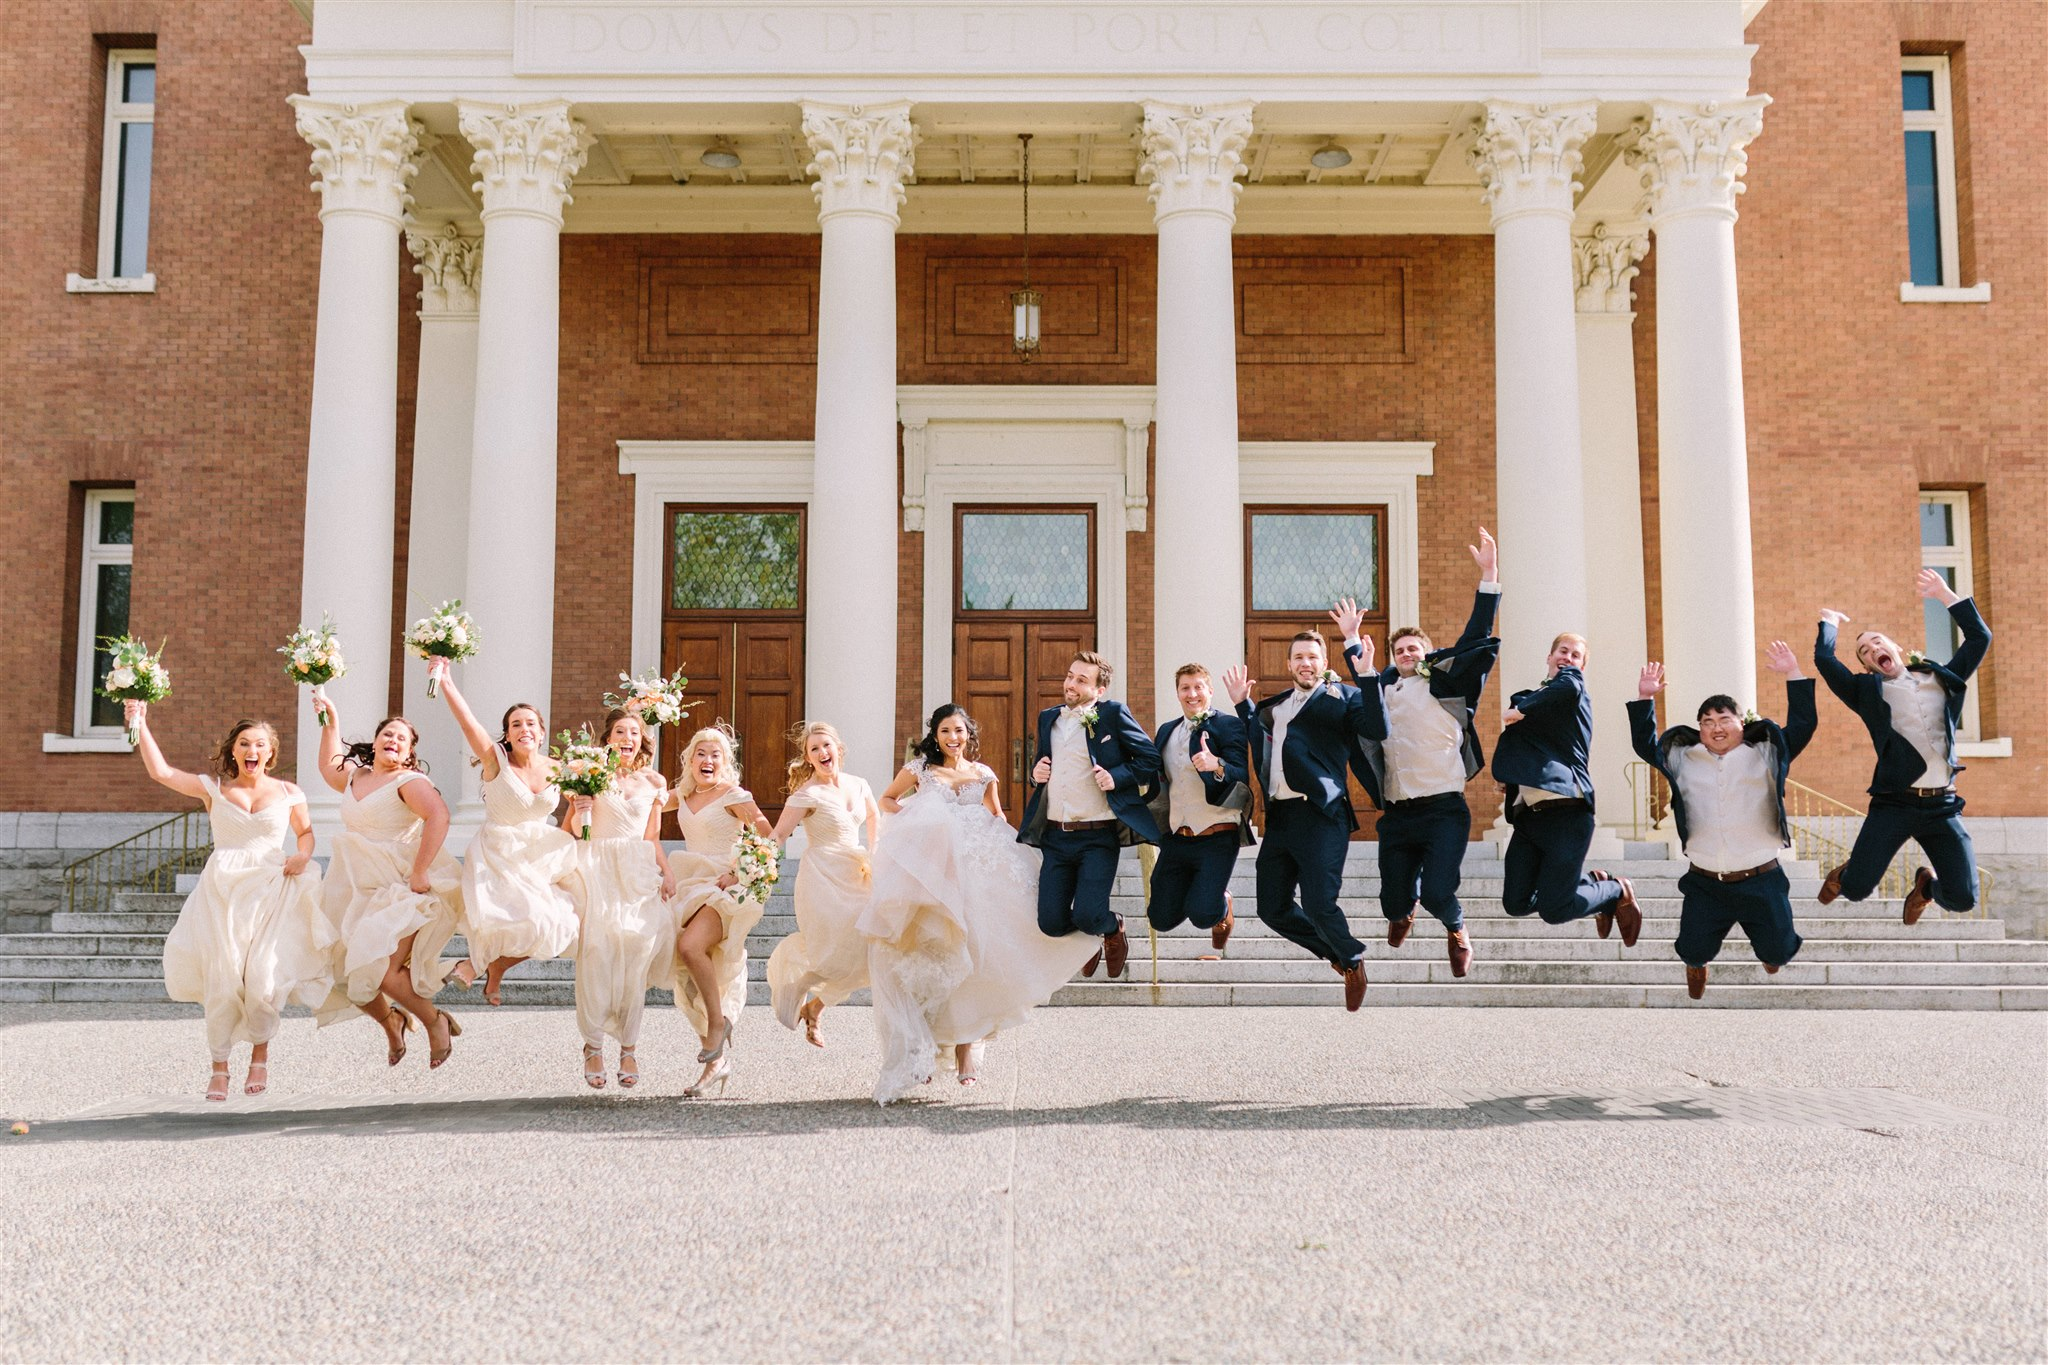 happy jumping wedding party picture spokane couple